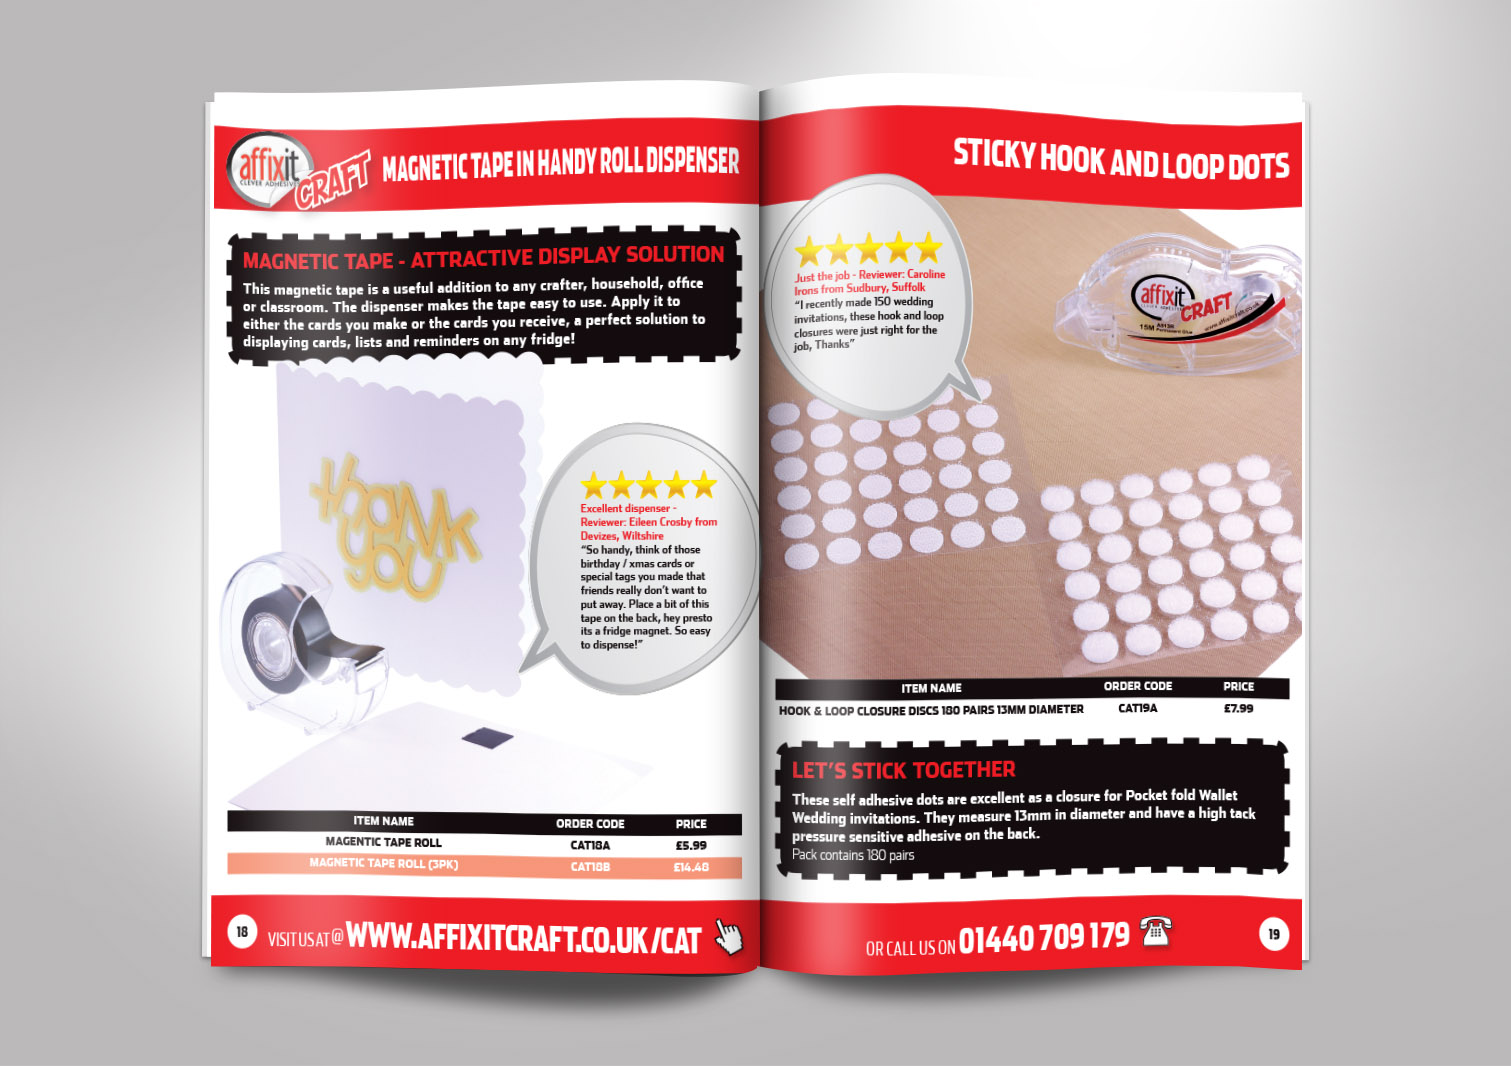 Affixit Craft Order Catalogue Inside Pages 18 and 19